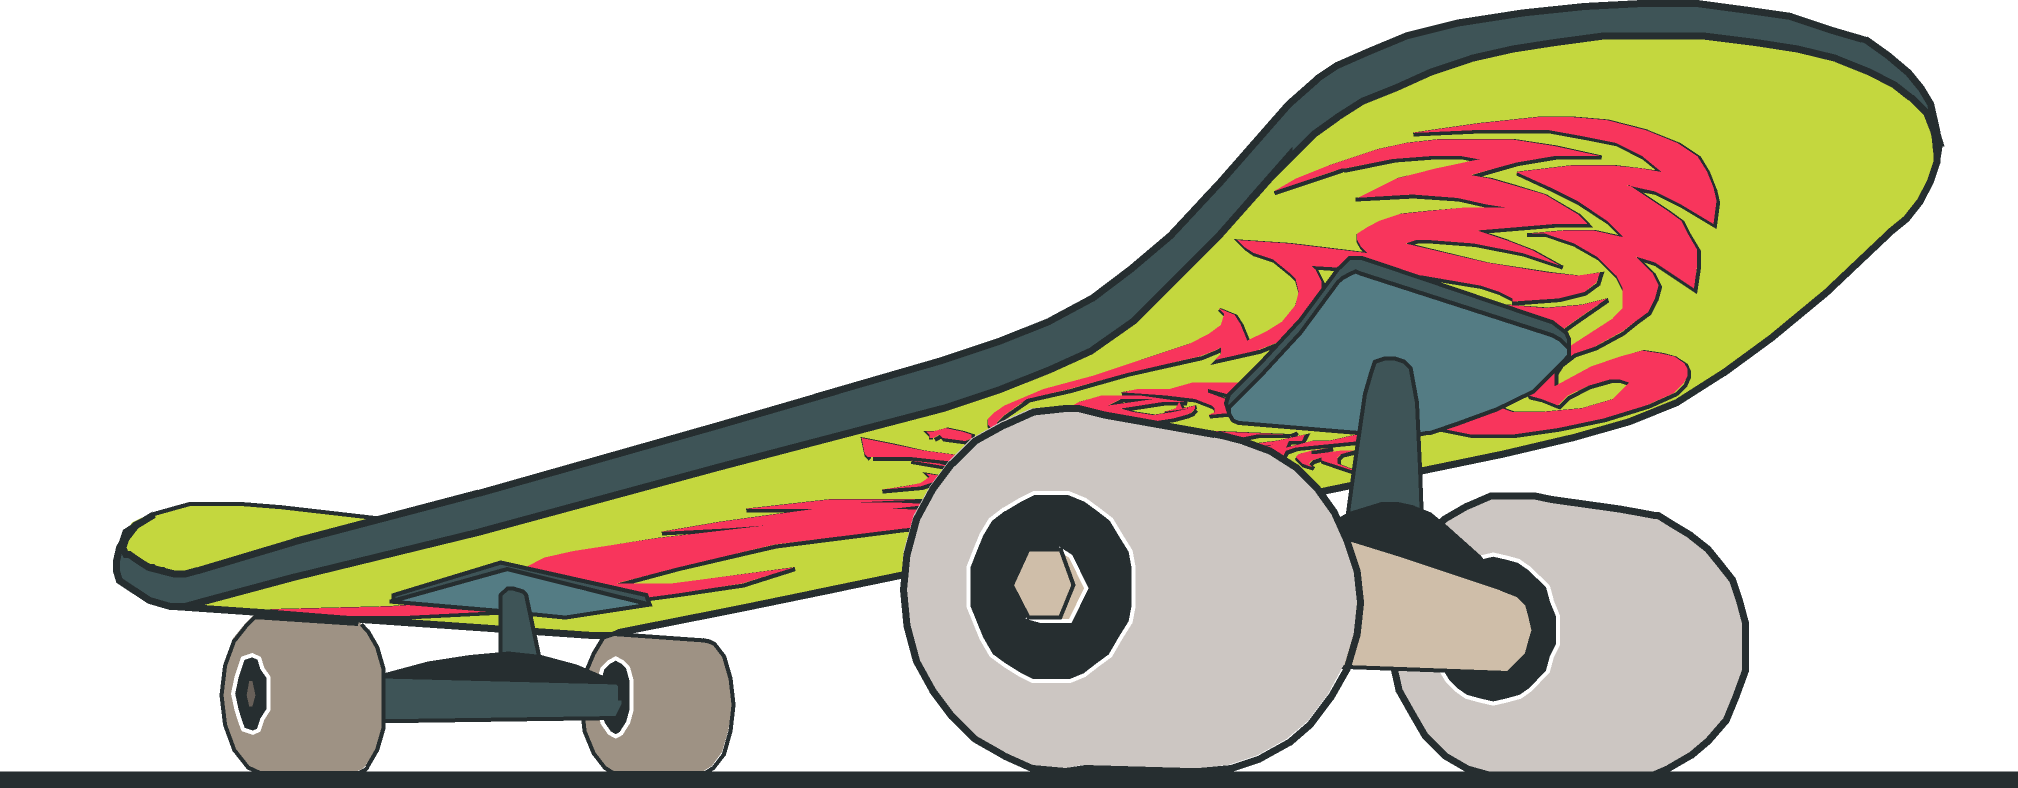 Skateboard clipart red Skateboard Clipart of Clipartix image